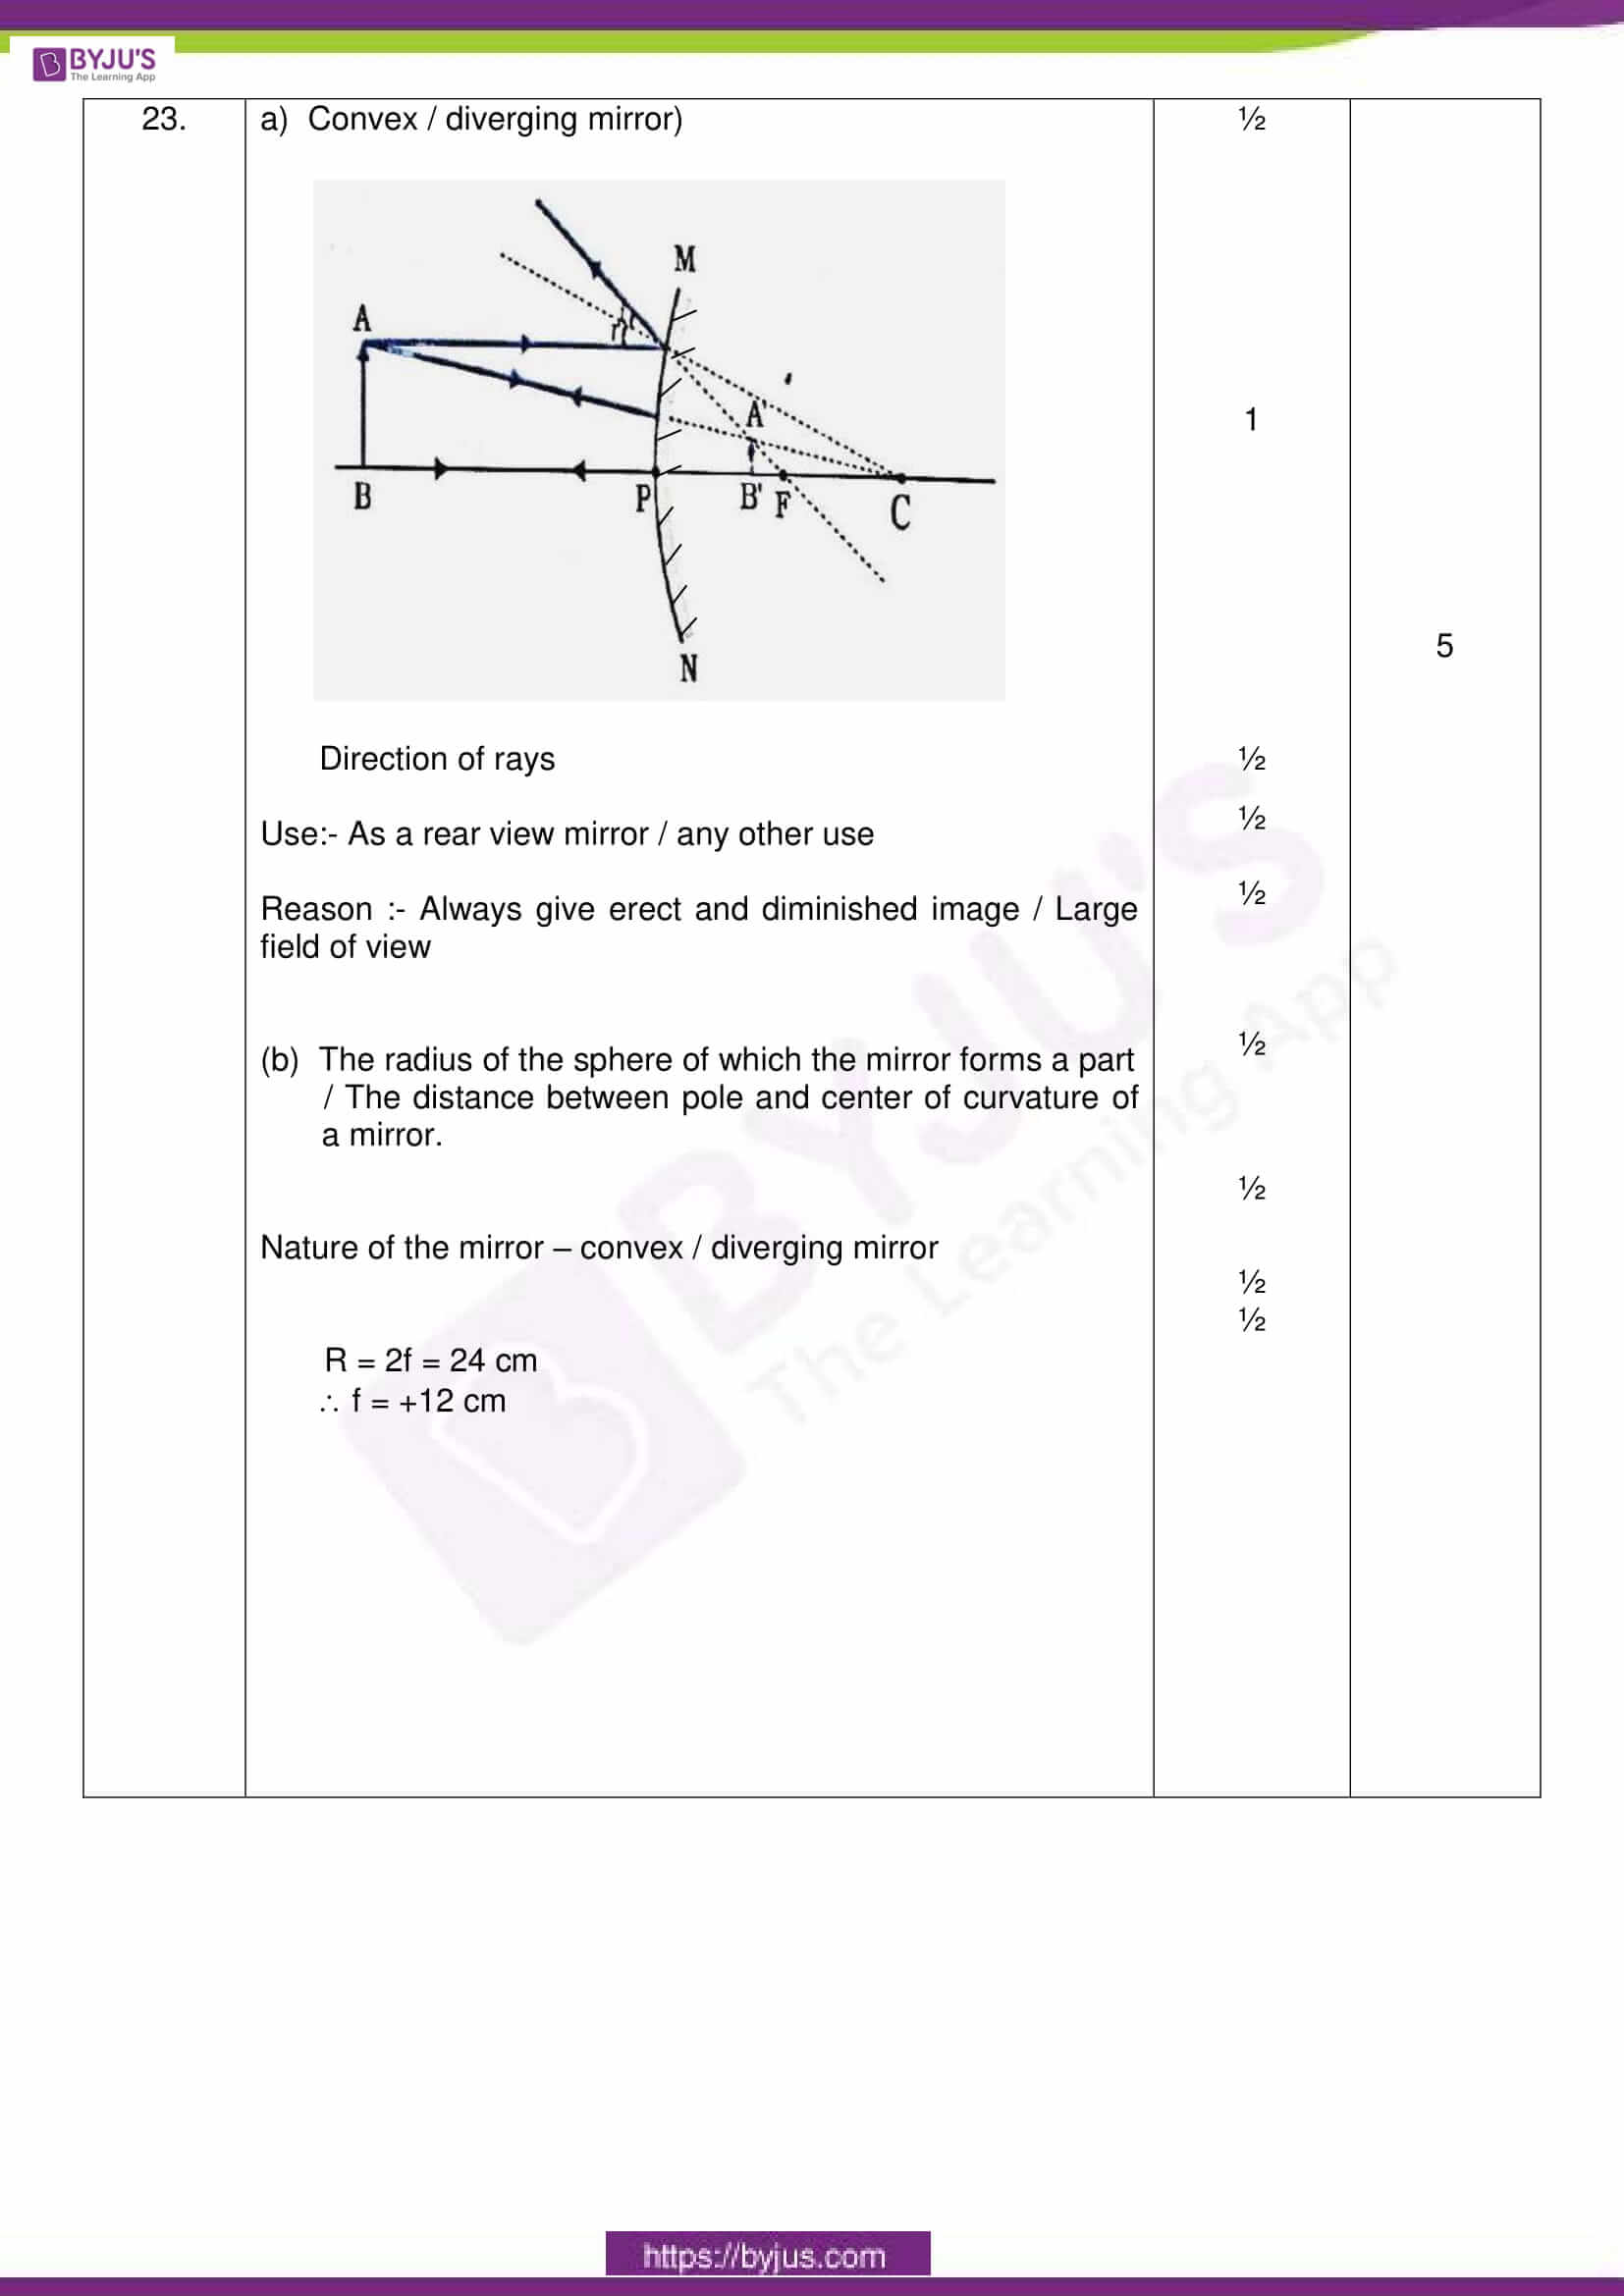 cbse class 10 science solutions 2017